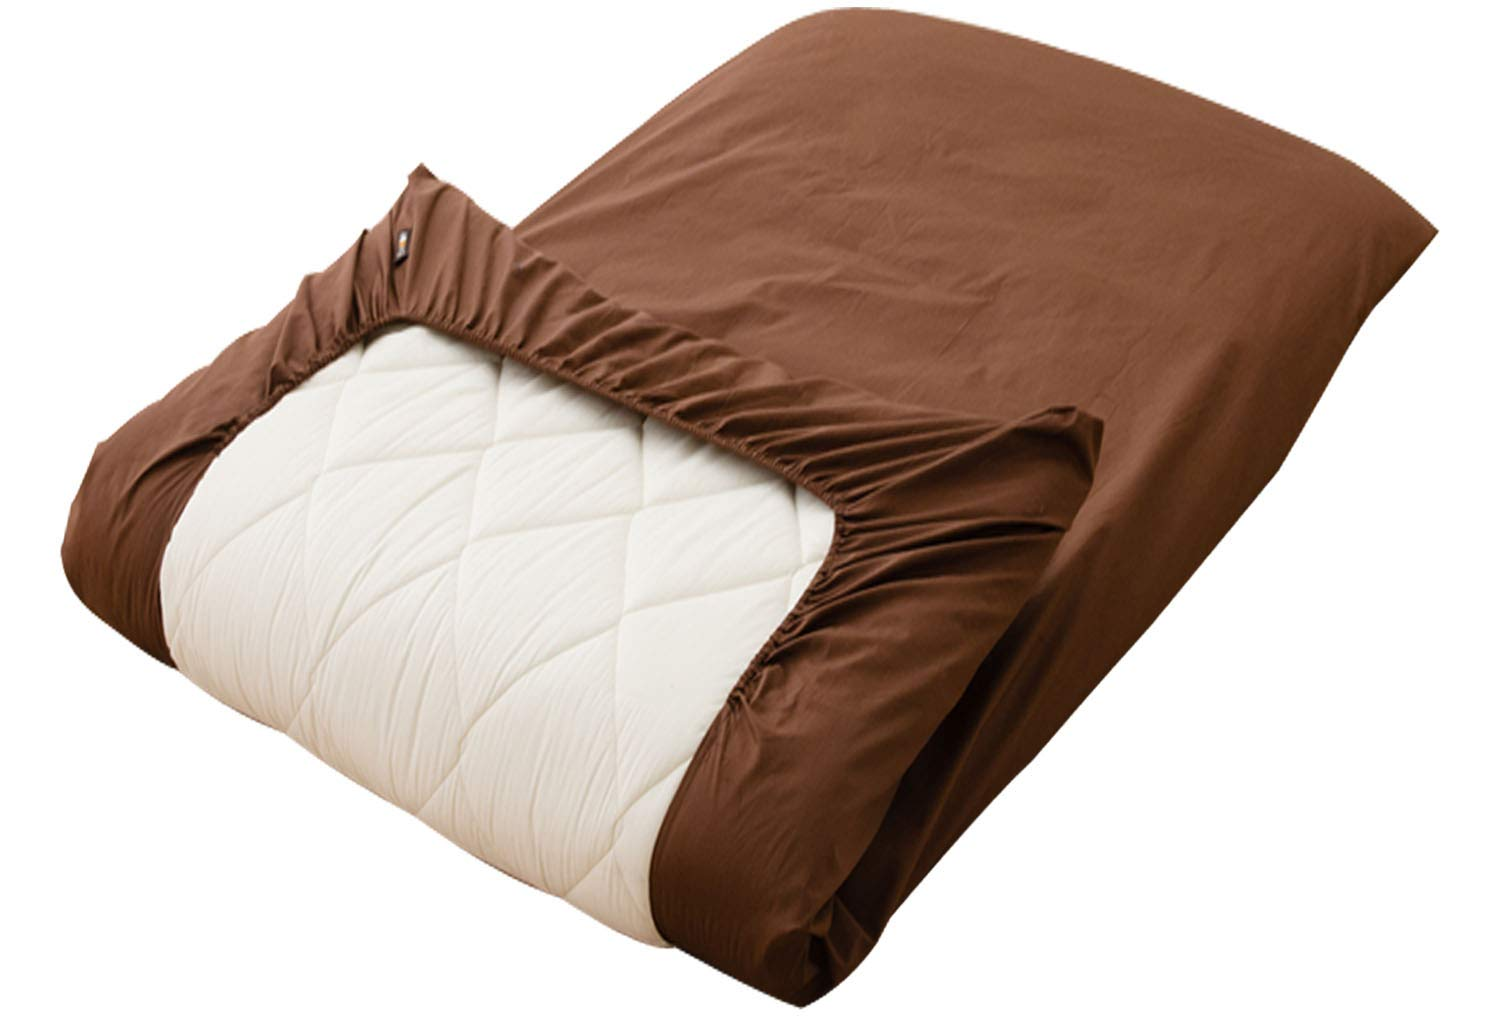 EMOOR Color 100% Cotton Fitted Sheet for The Thick Futon Mattress (Brown), Japanese Queen Size (63 x 83 x 8 in.). Made in Japan by EMOOR